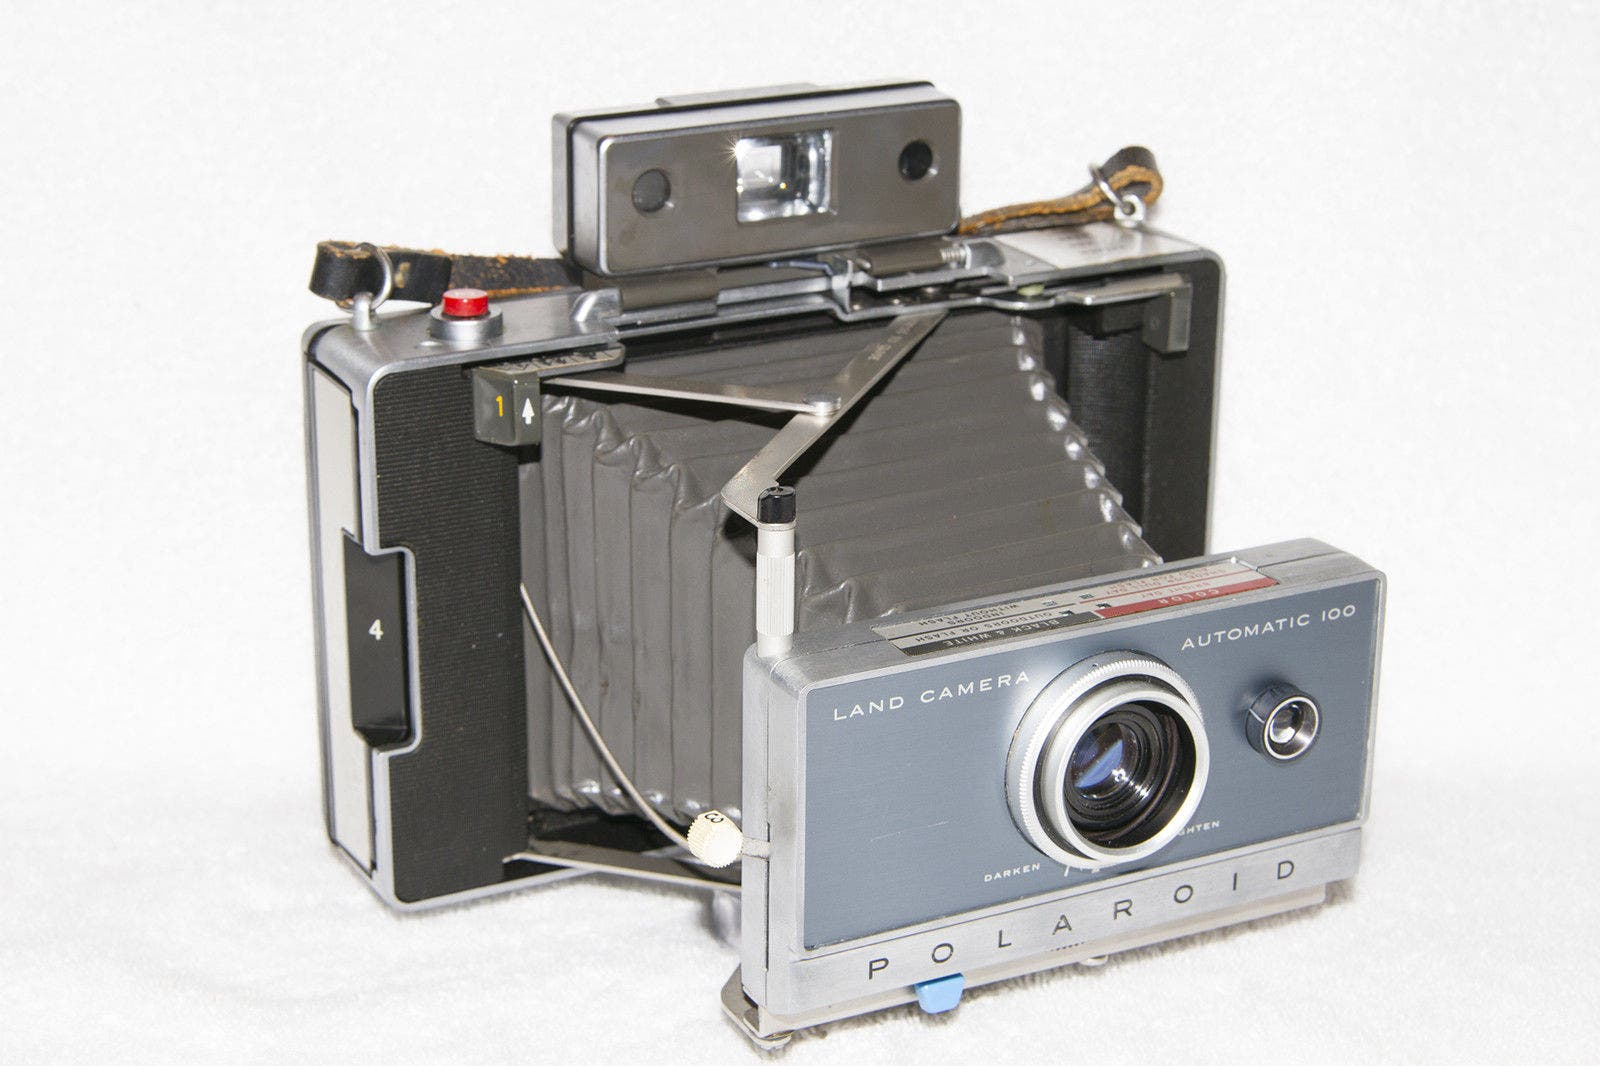 This Polaroid 100 Land Camera Prototype is Going for an Insane Price